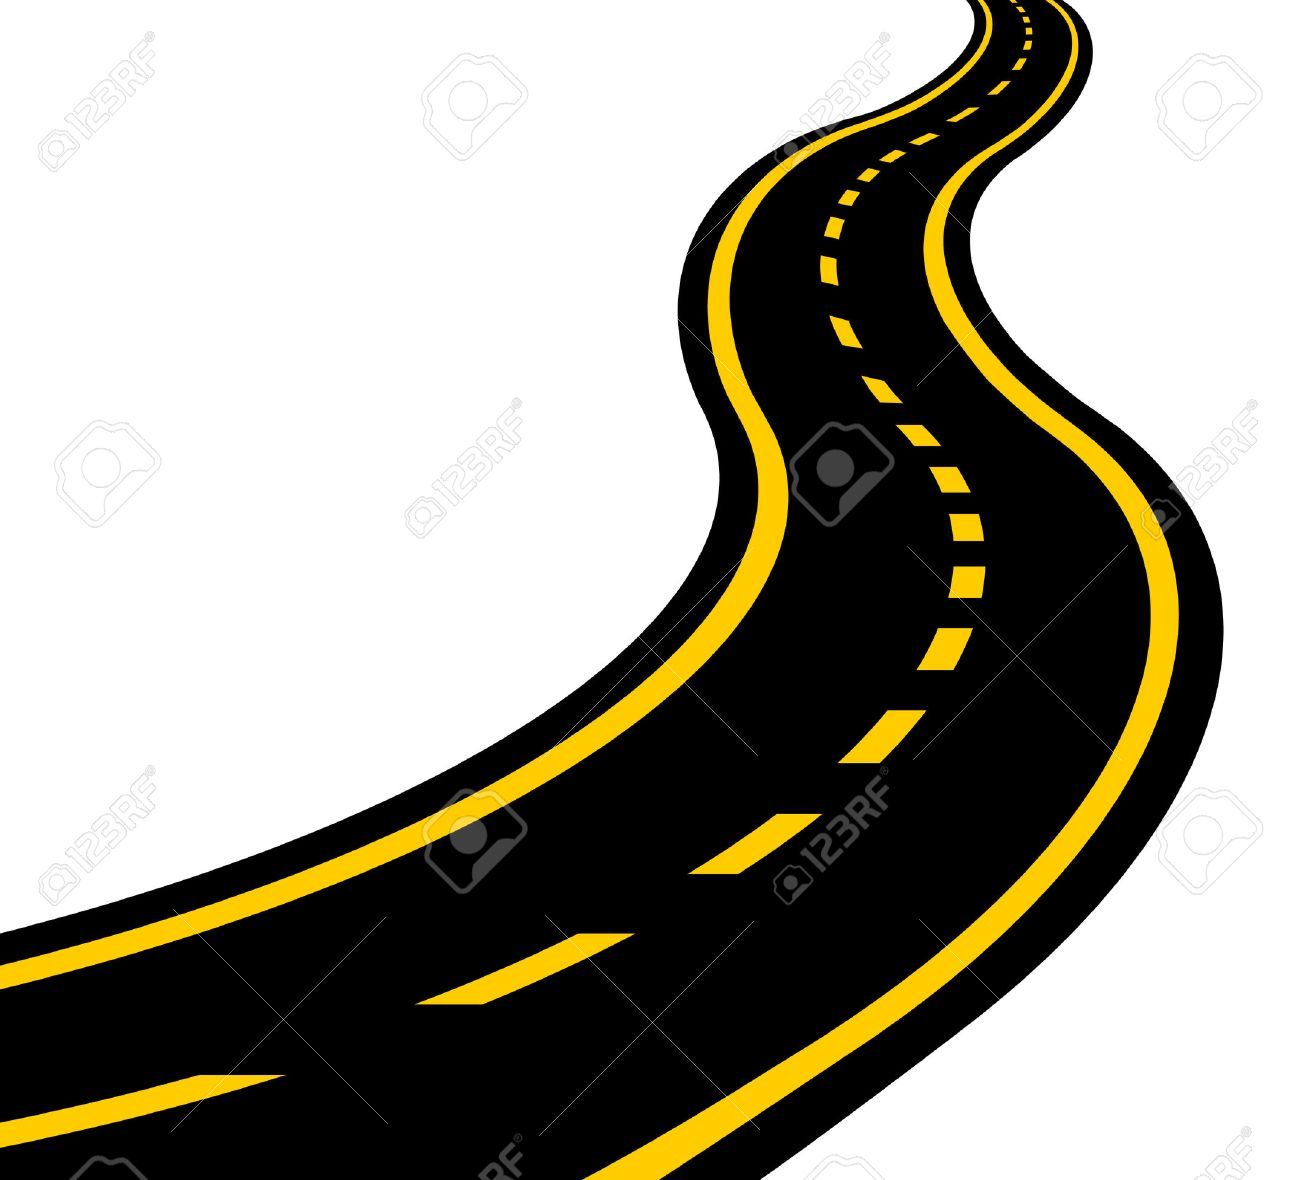 Windy road overhead view clipart graphic freeuse stock Winding Road Clipart | Free download best Winding Road Clipart on ... graphic freeuse stock